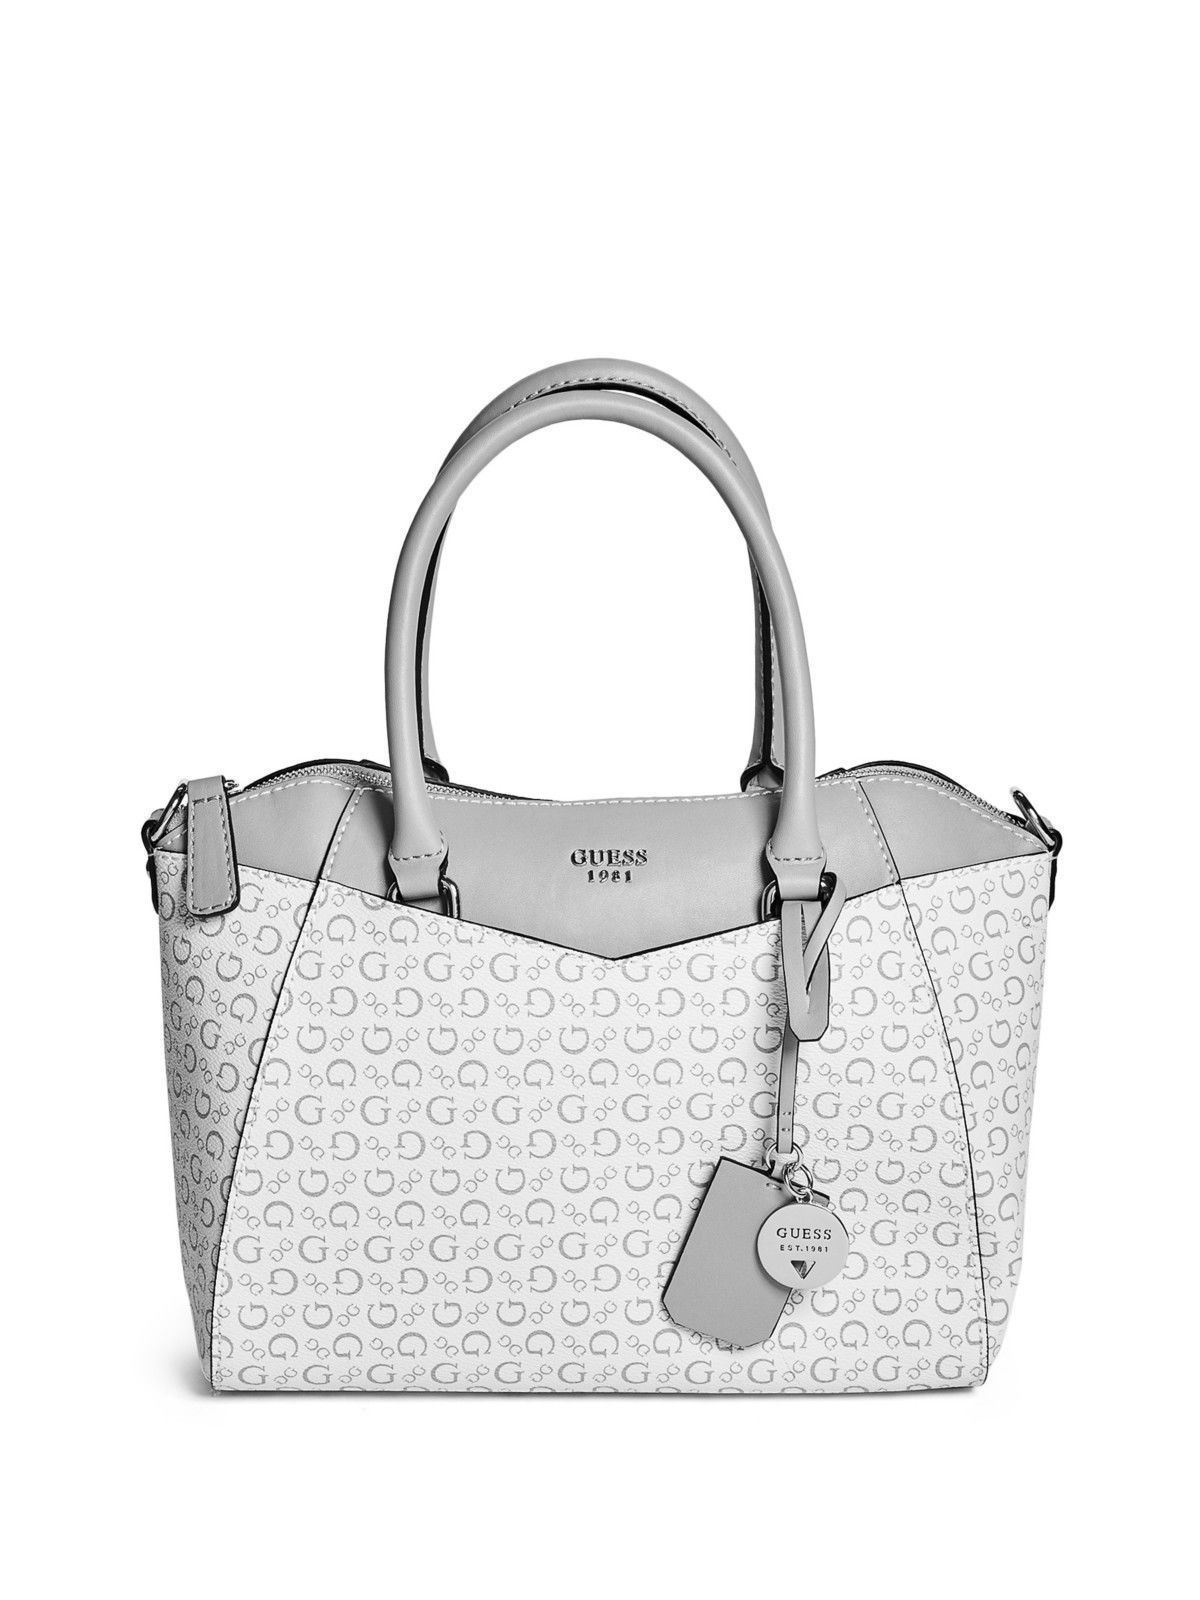 33df3341400 GUESS Factory Womens Birch Logo Satchel   Guess   Pinterest   Guess ...